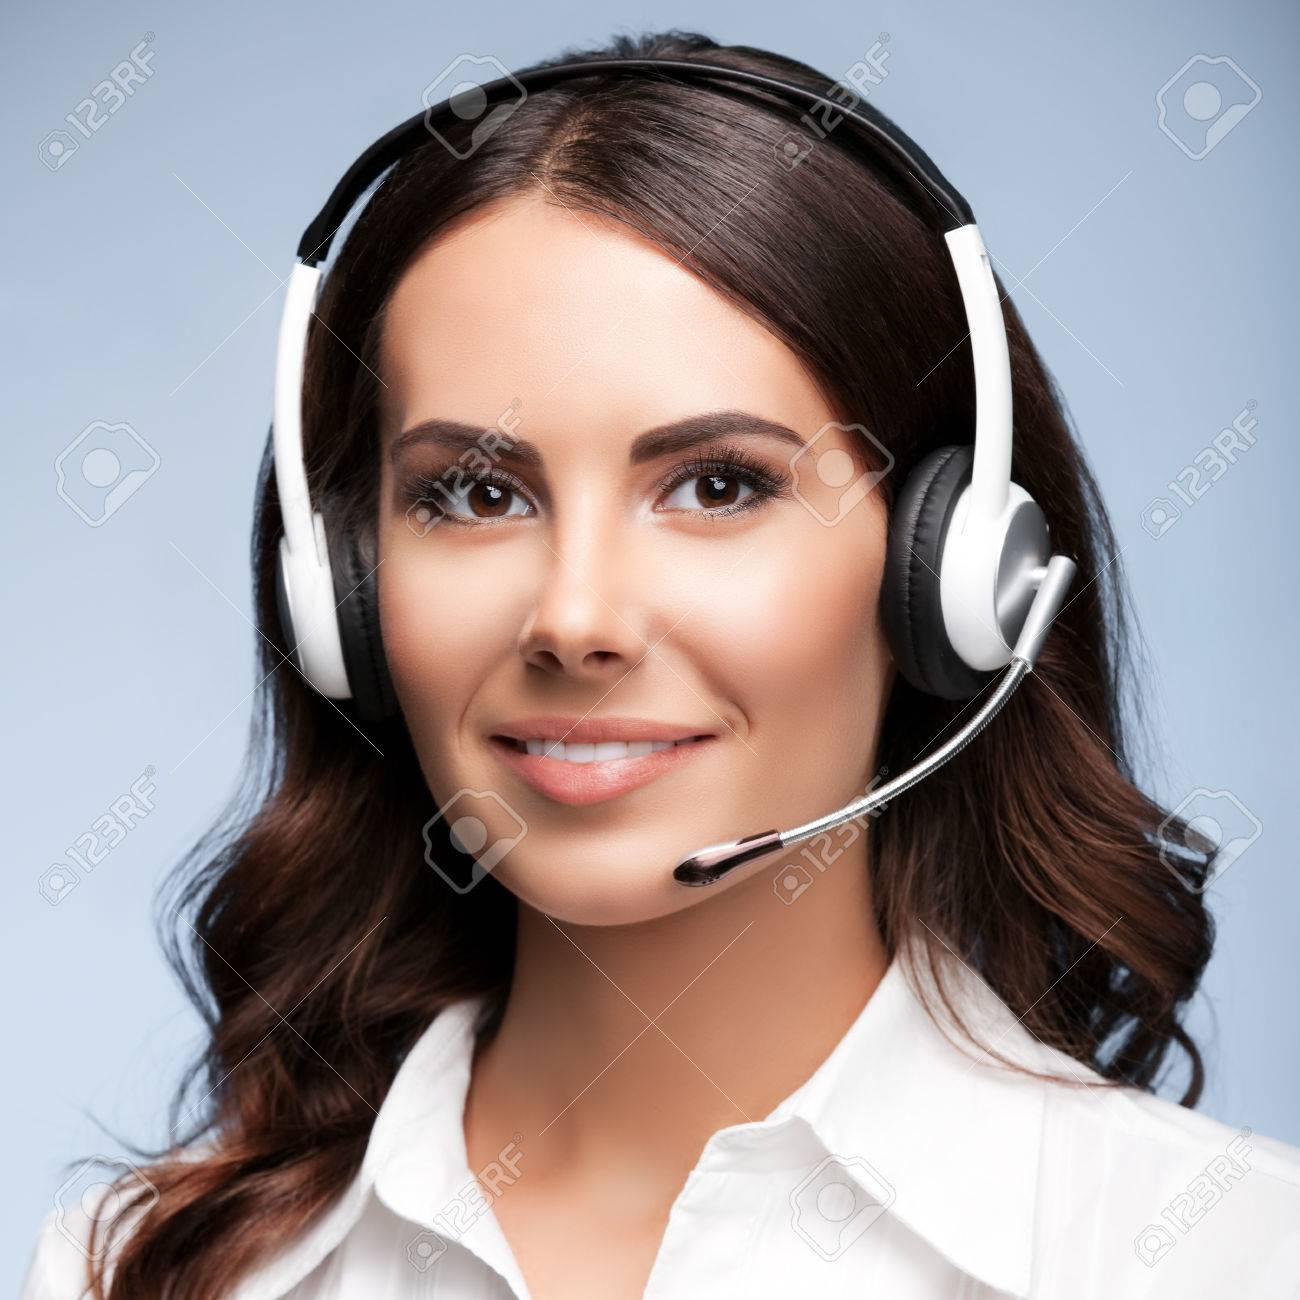 Female customer support phone operator in headset, against grey background. Consulting and assistance service call center. - 41556390